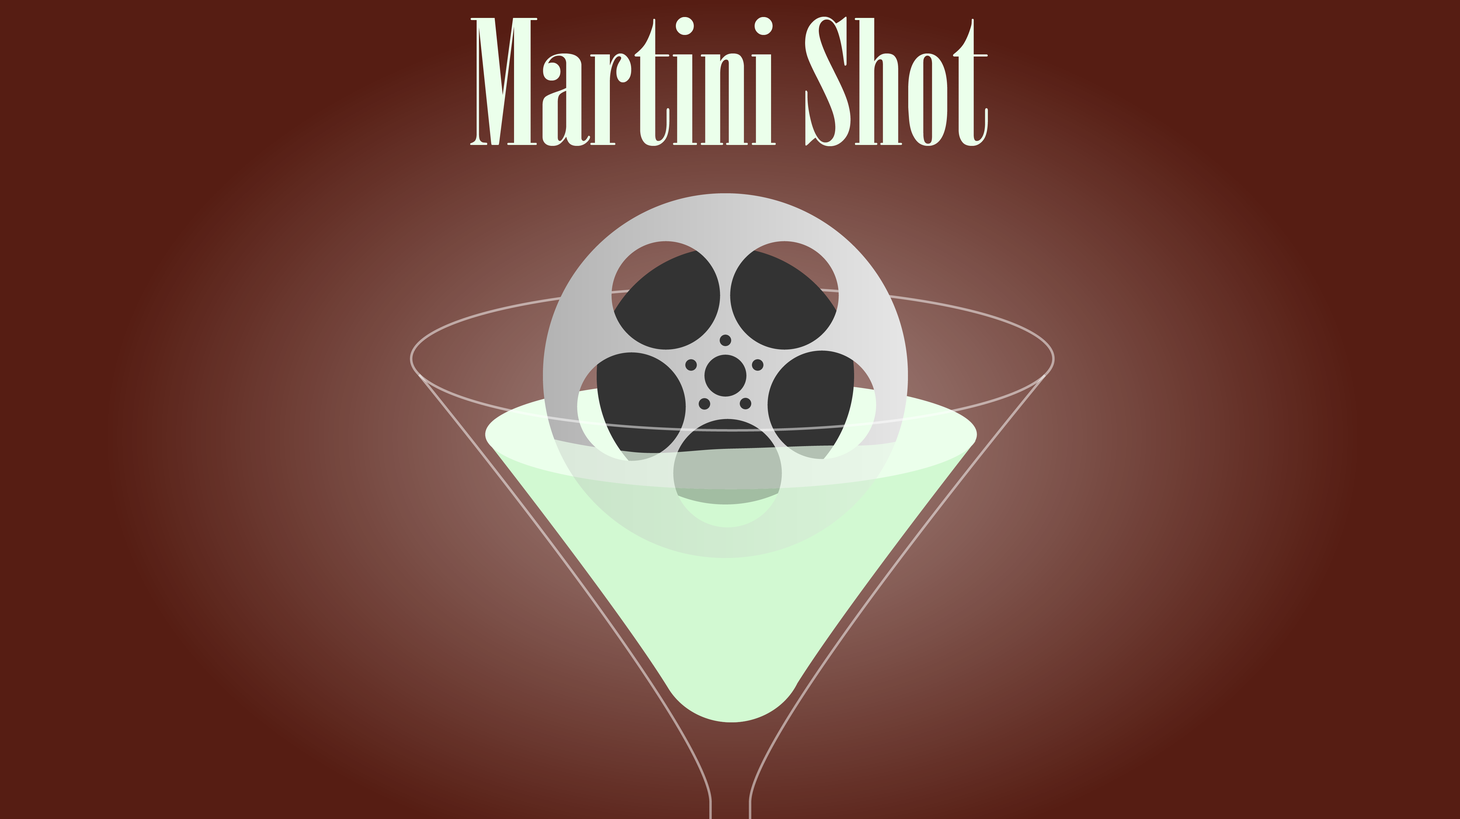 This is Rob Long, and on today's Martini Shot I pitch what I think would be a huge smash hit of a television show, that is, if I were pitching it, but I'm not really pitching it.